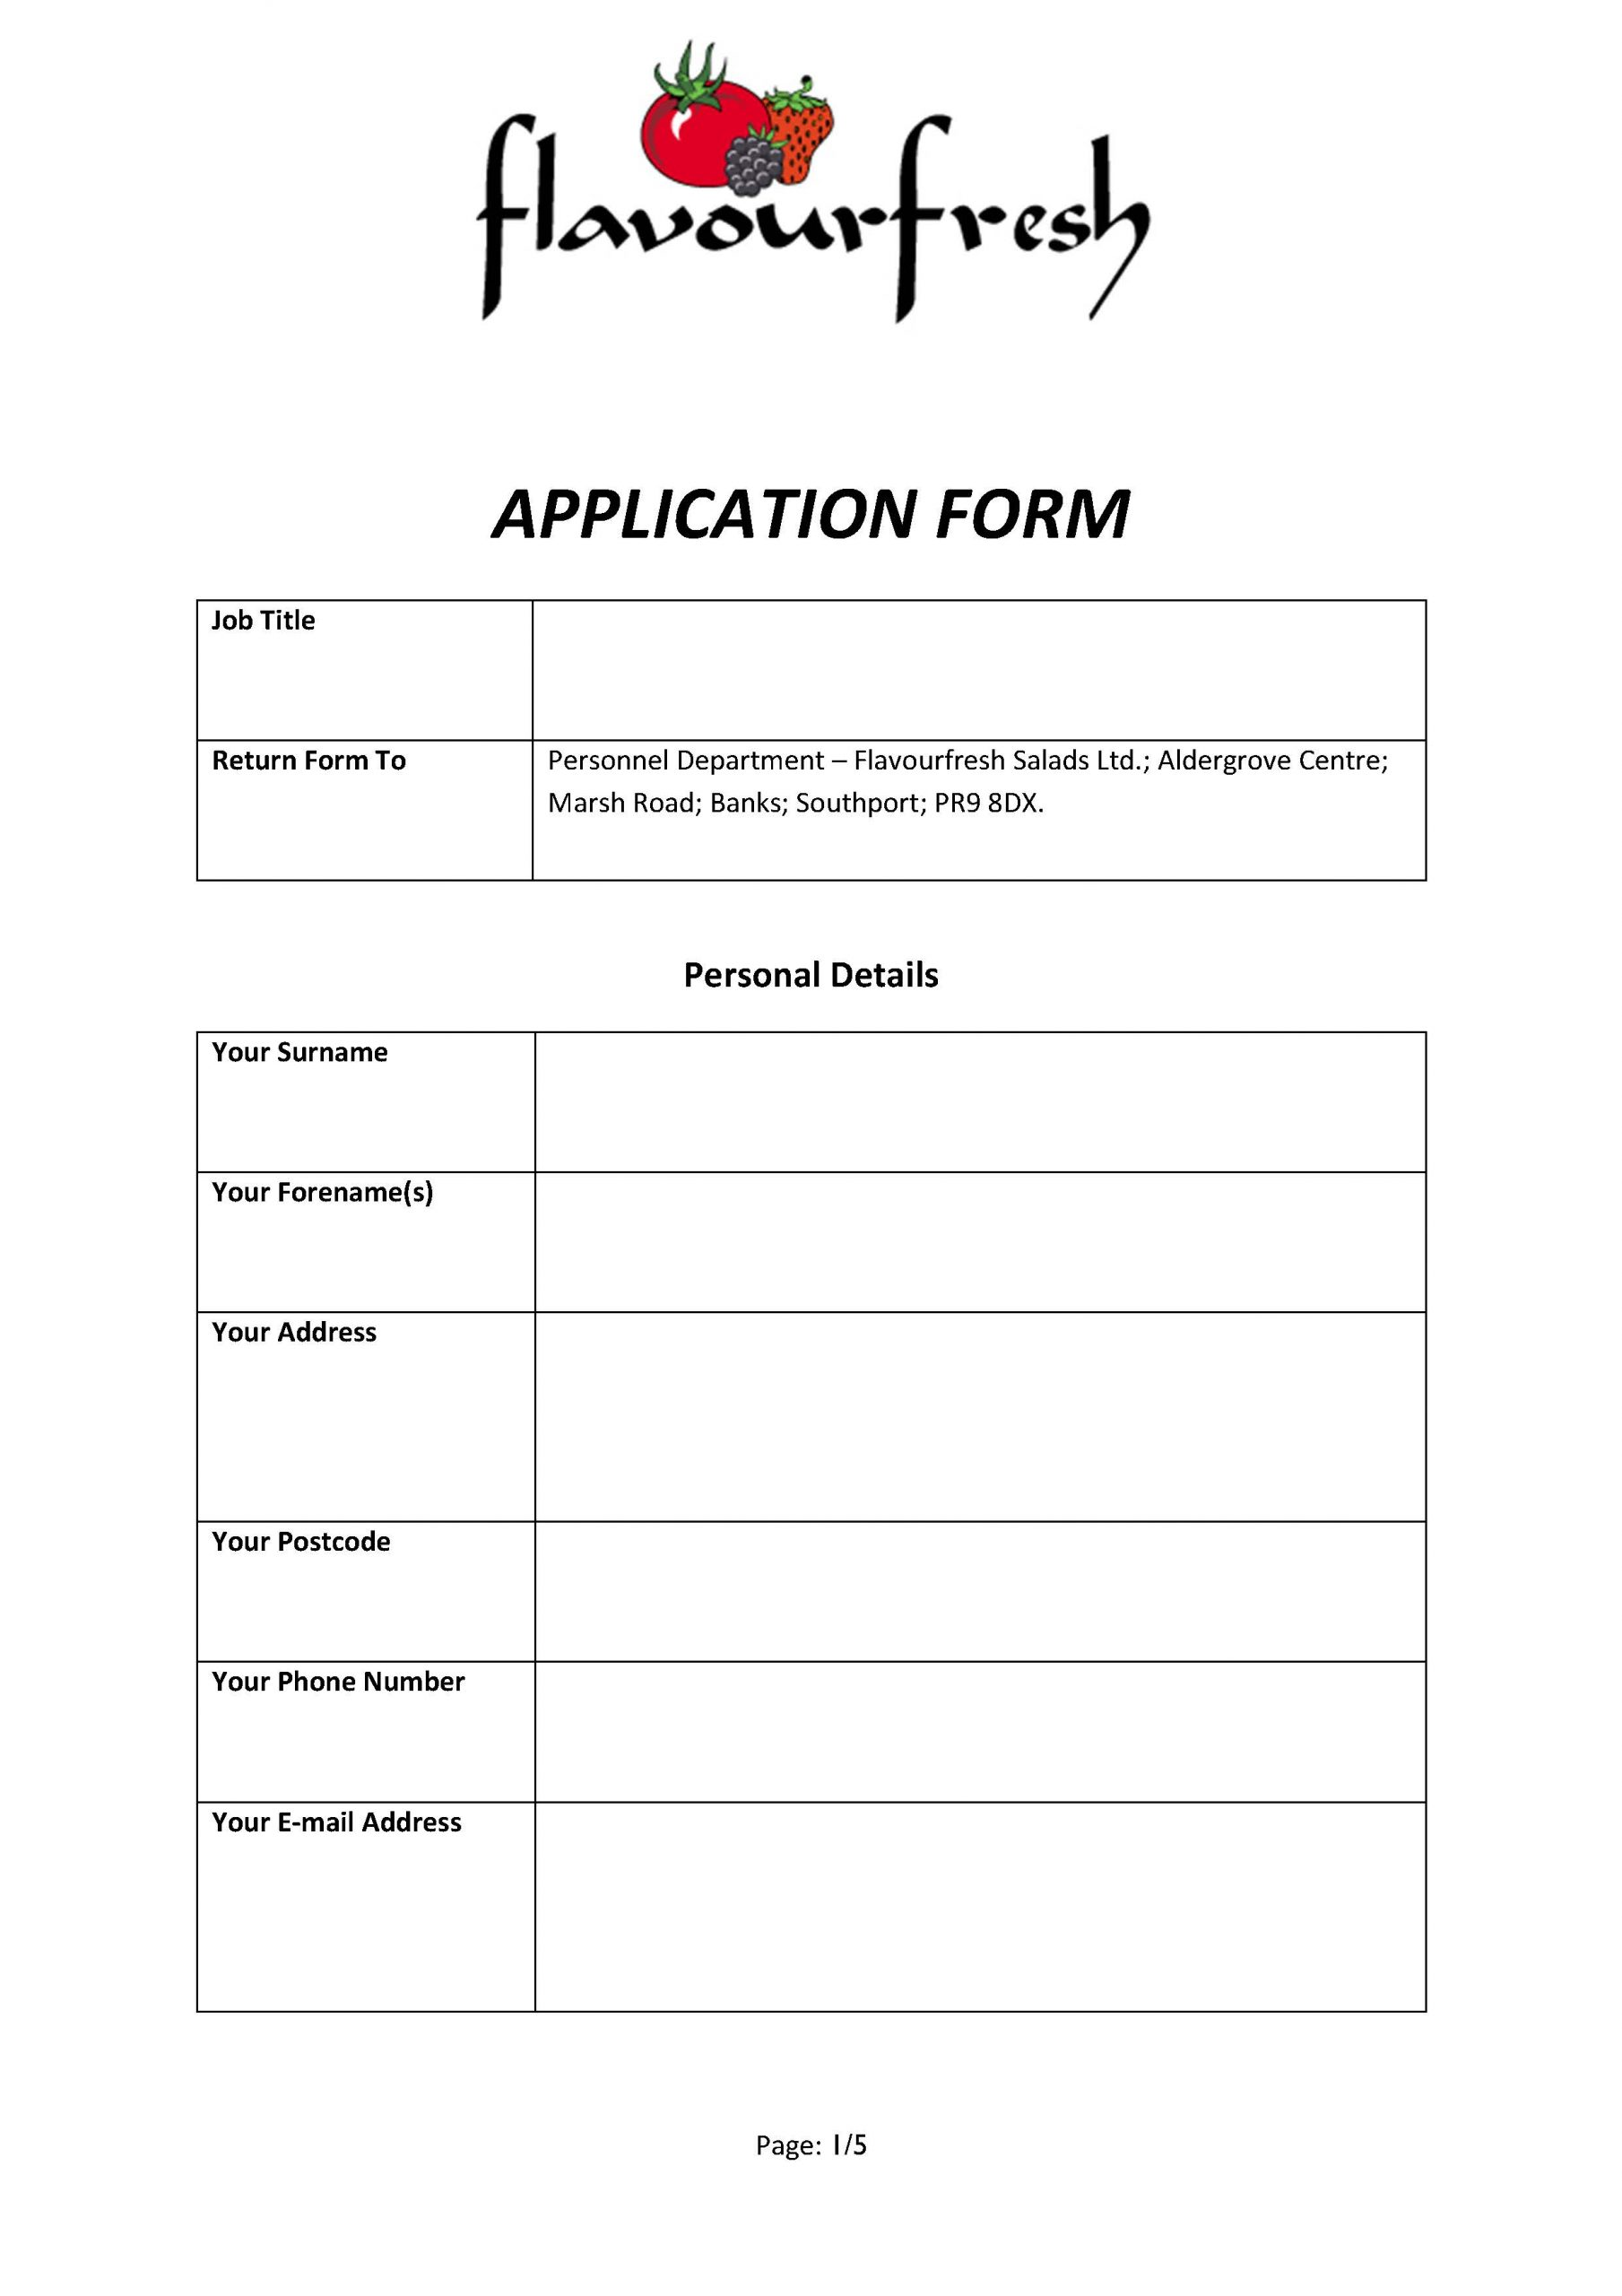 Flavourfresh Application Form 2021